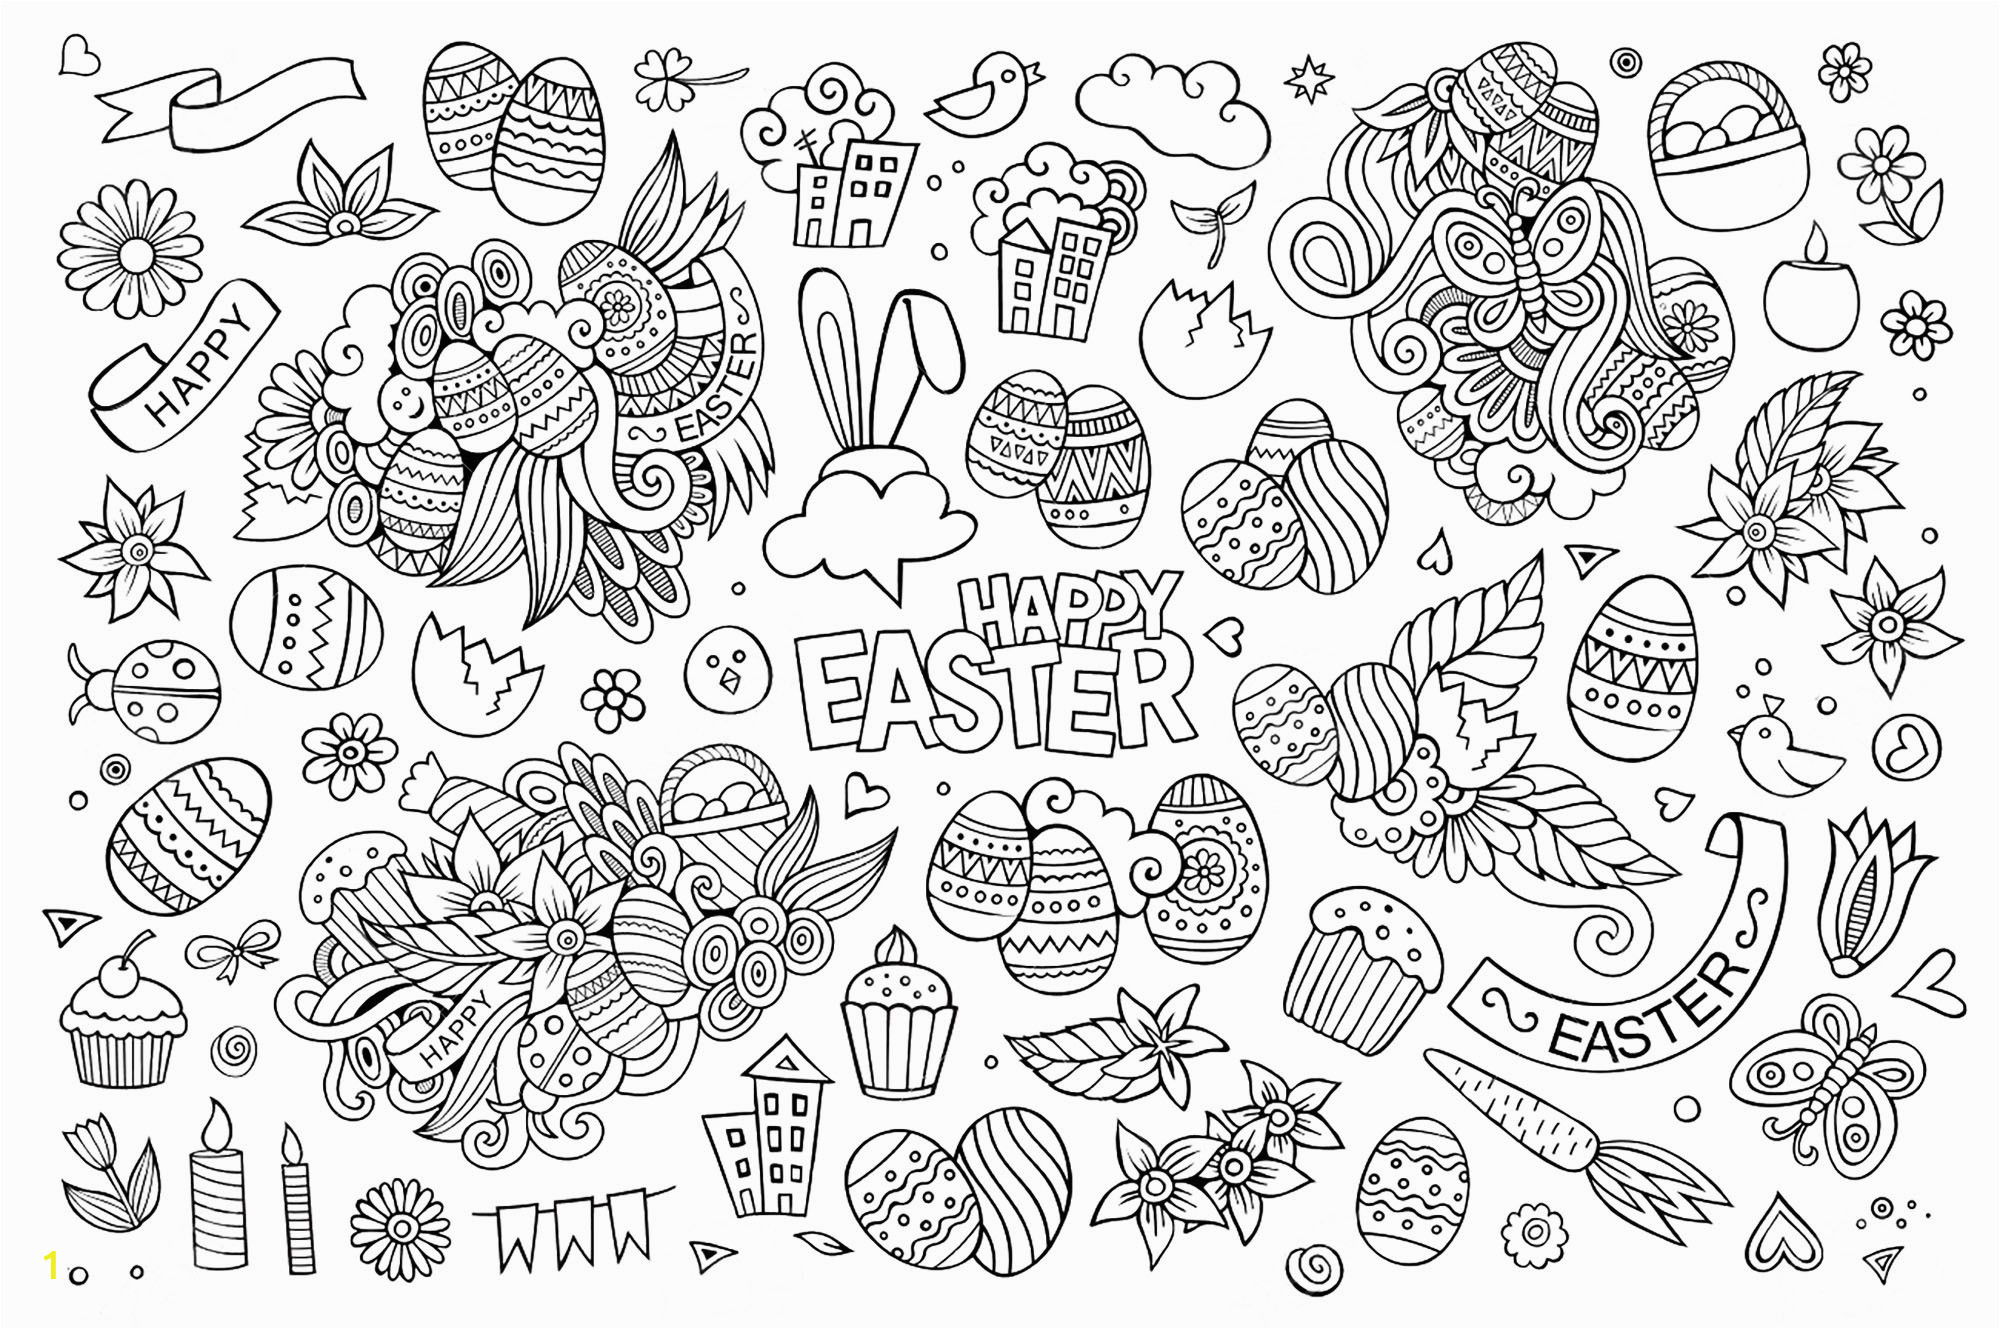 easterlt coloring egg hunt pages unique simple doodle ideas happy easter day pages